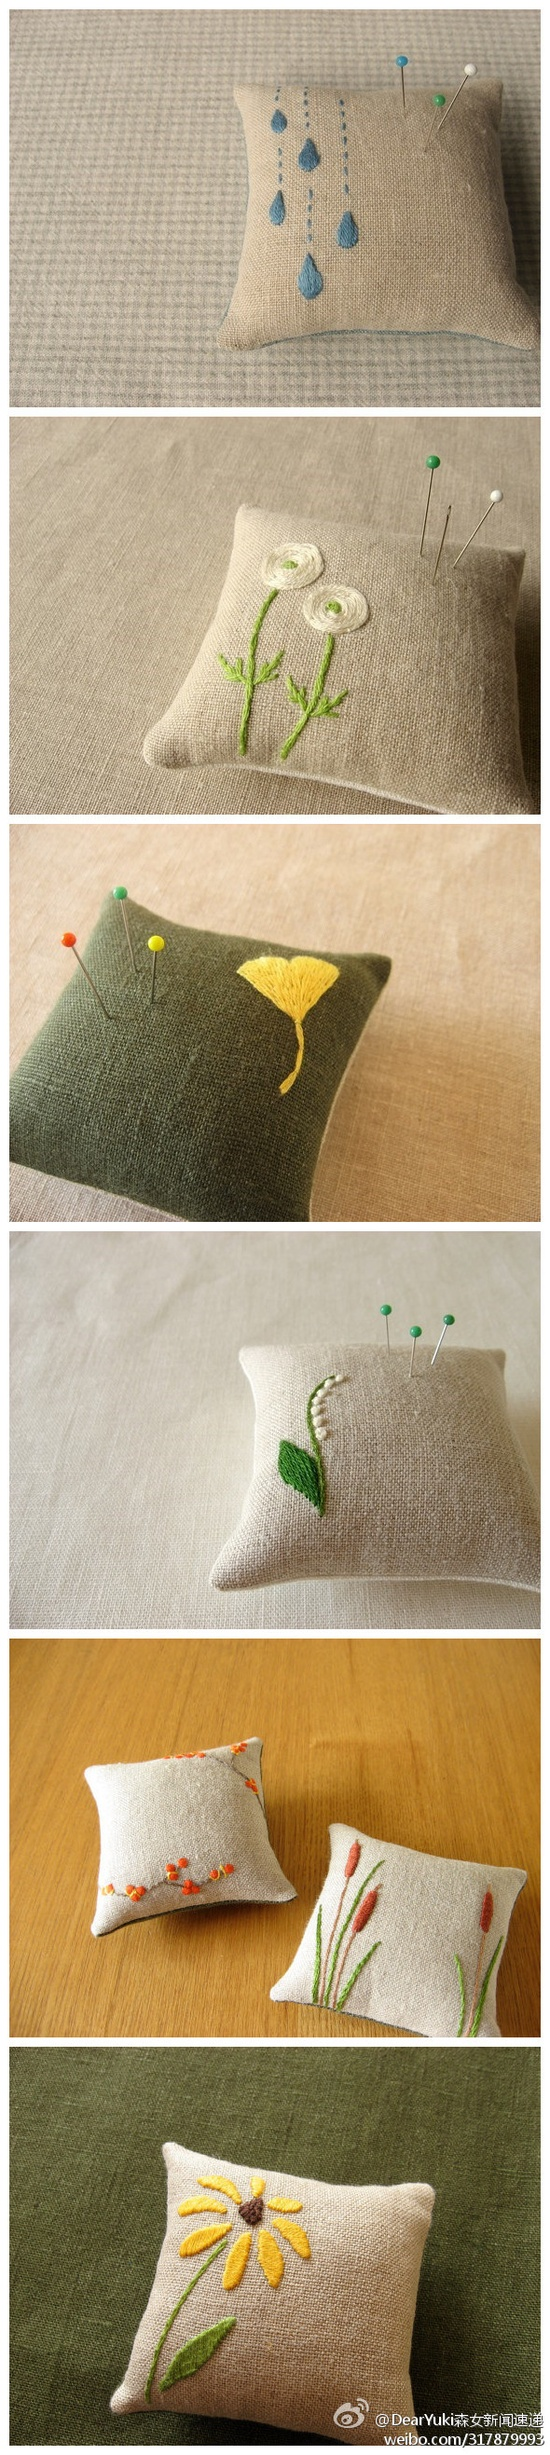 sweet embroidered pincushions on linen. Would be great as full sized pillows